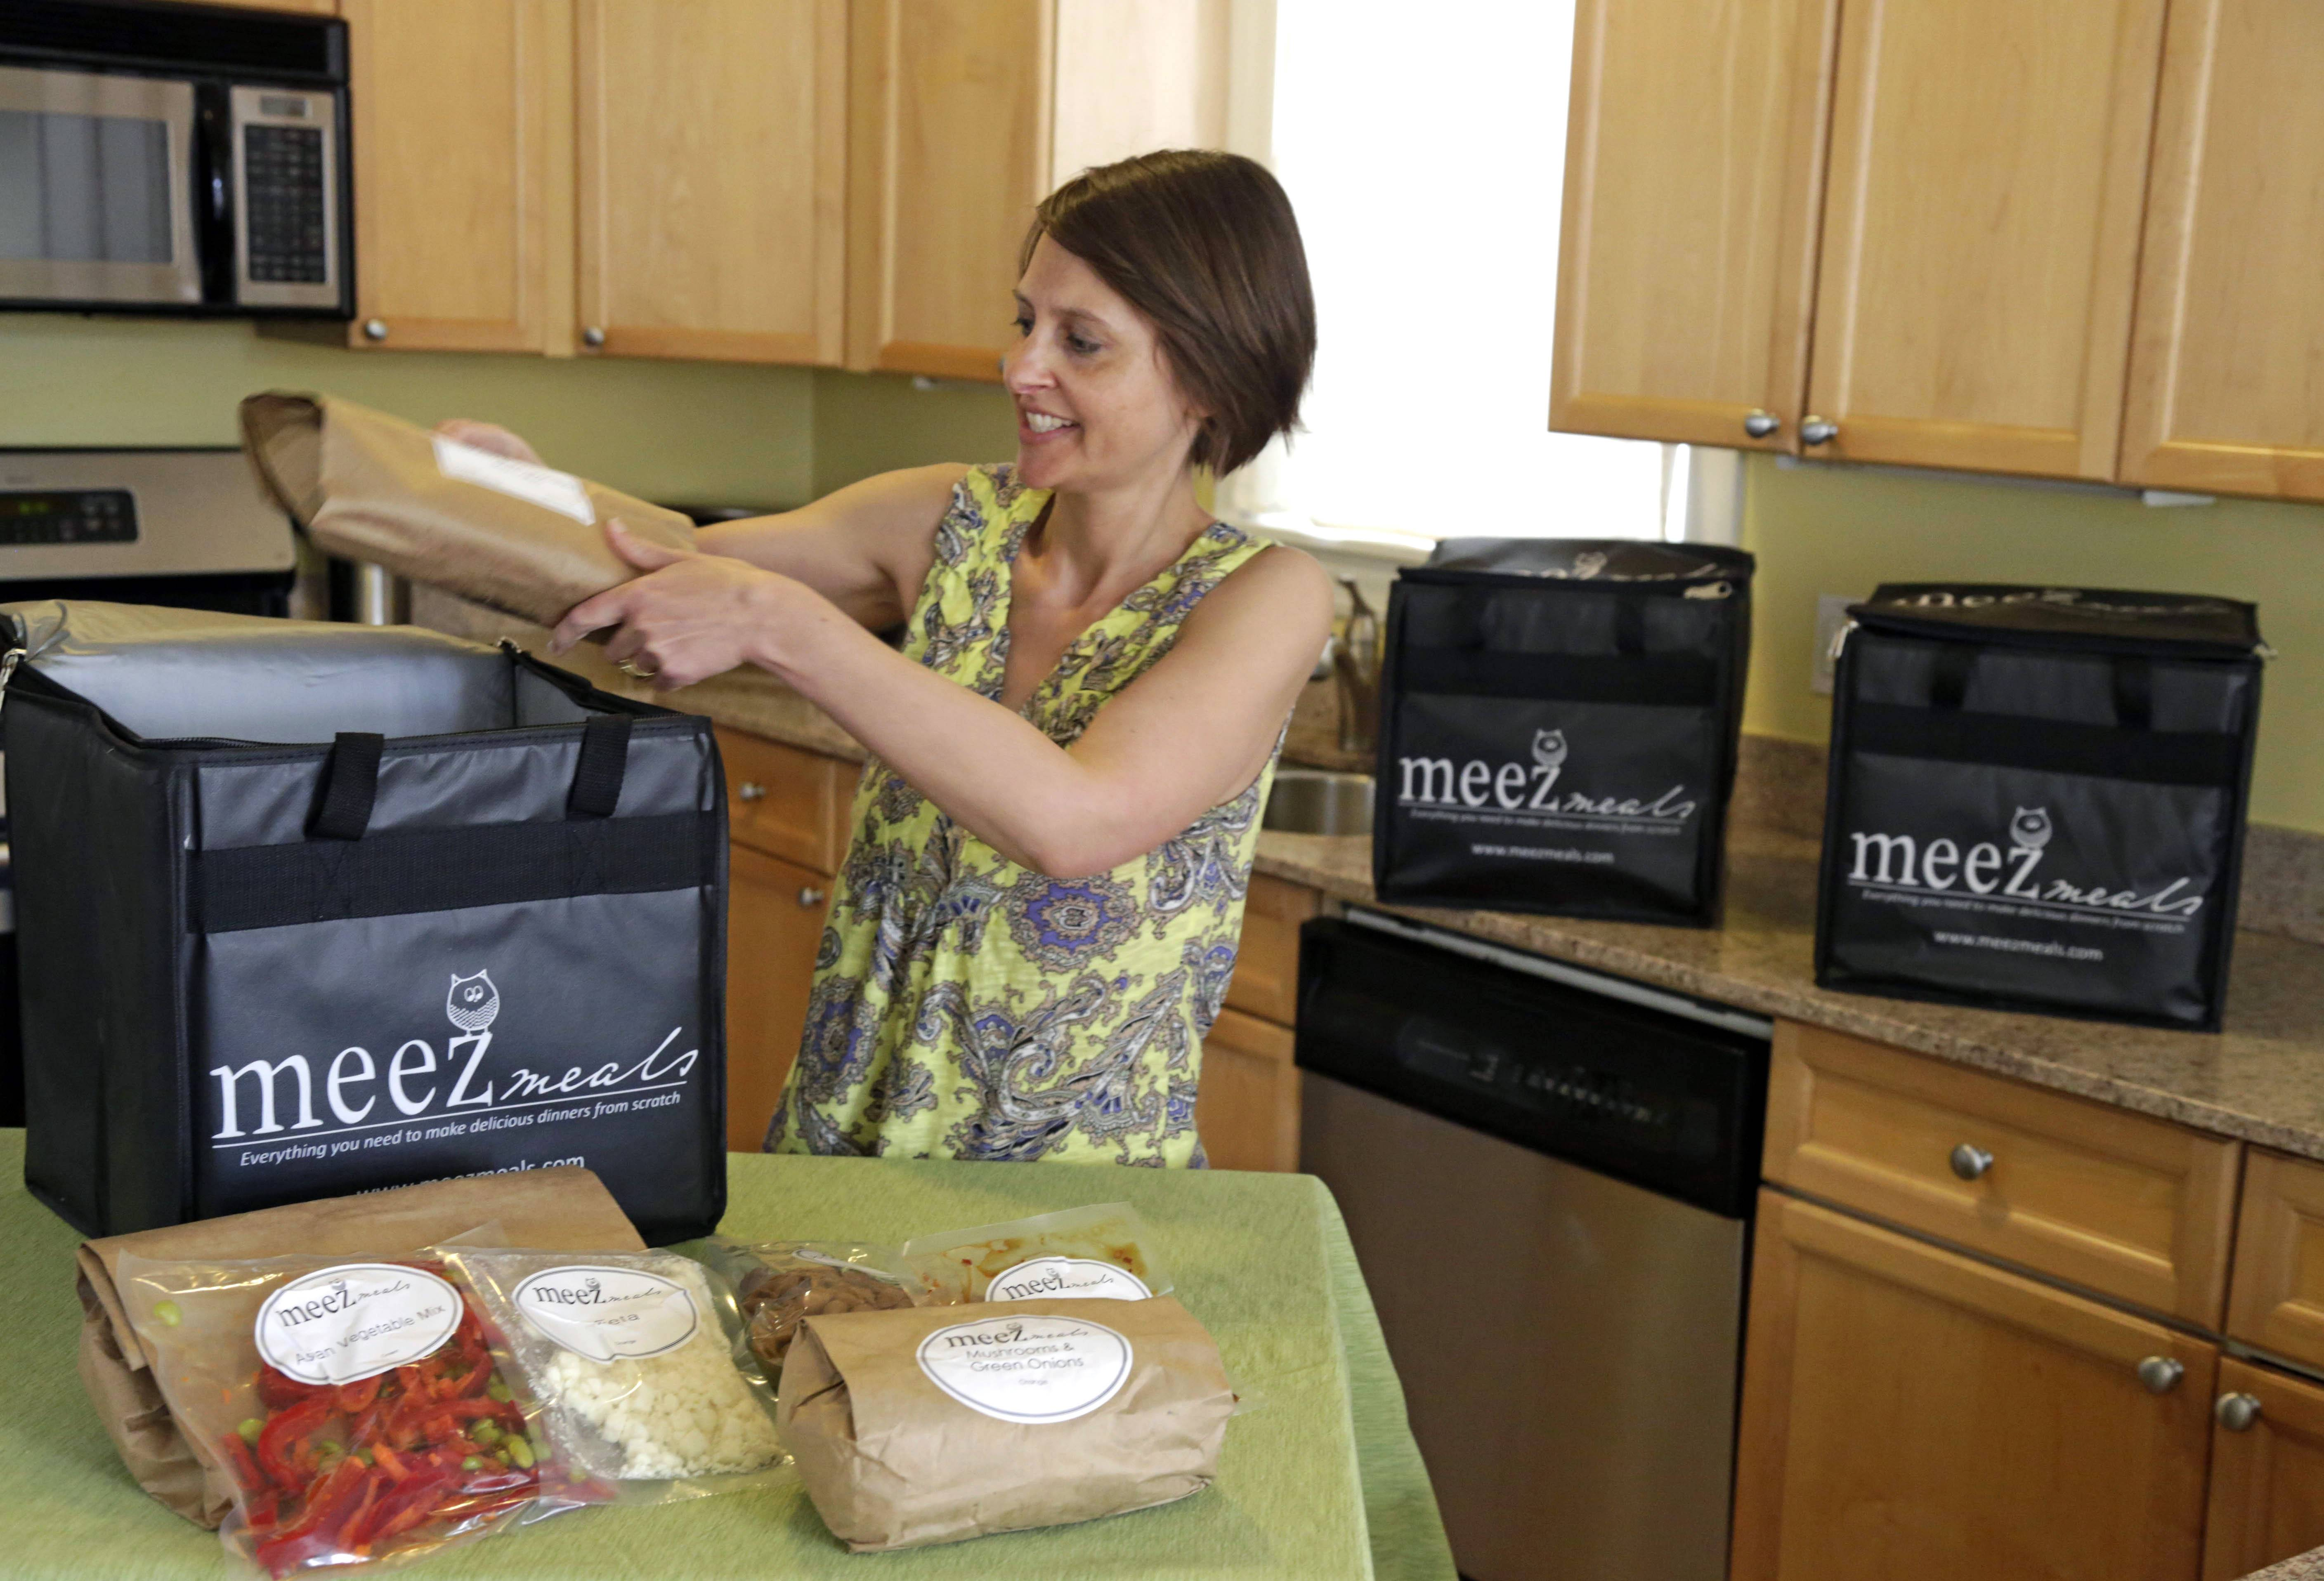 Jen Collins Moore, owner of Meez Meals, places some of her ready to cook entrées in a delivery container in her kitchen in Chicago. Her company makes and delivers ingredients for dinner to customers whose busy lifestyles leave little time for meal preparation.